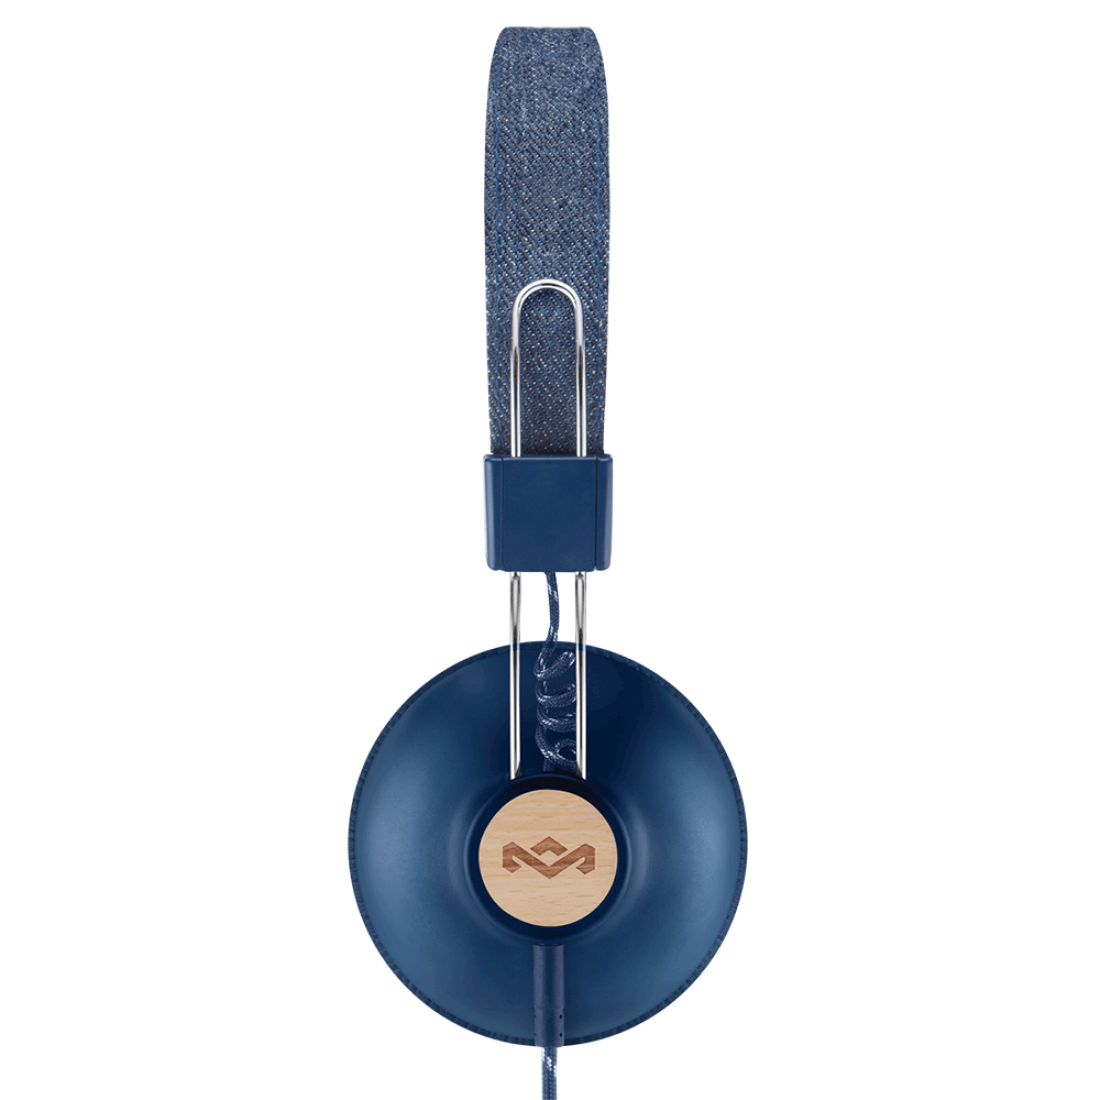 Positive Vibration 2 Wired On-Ear Headphones | House of Marley